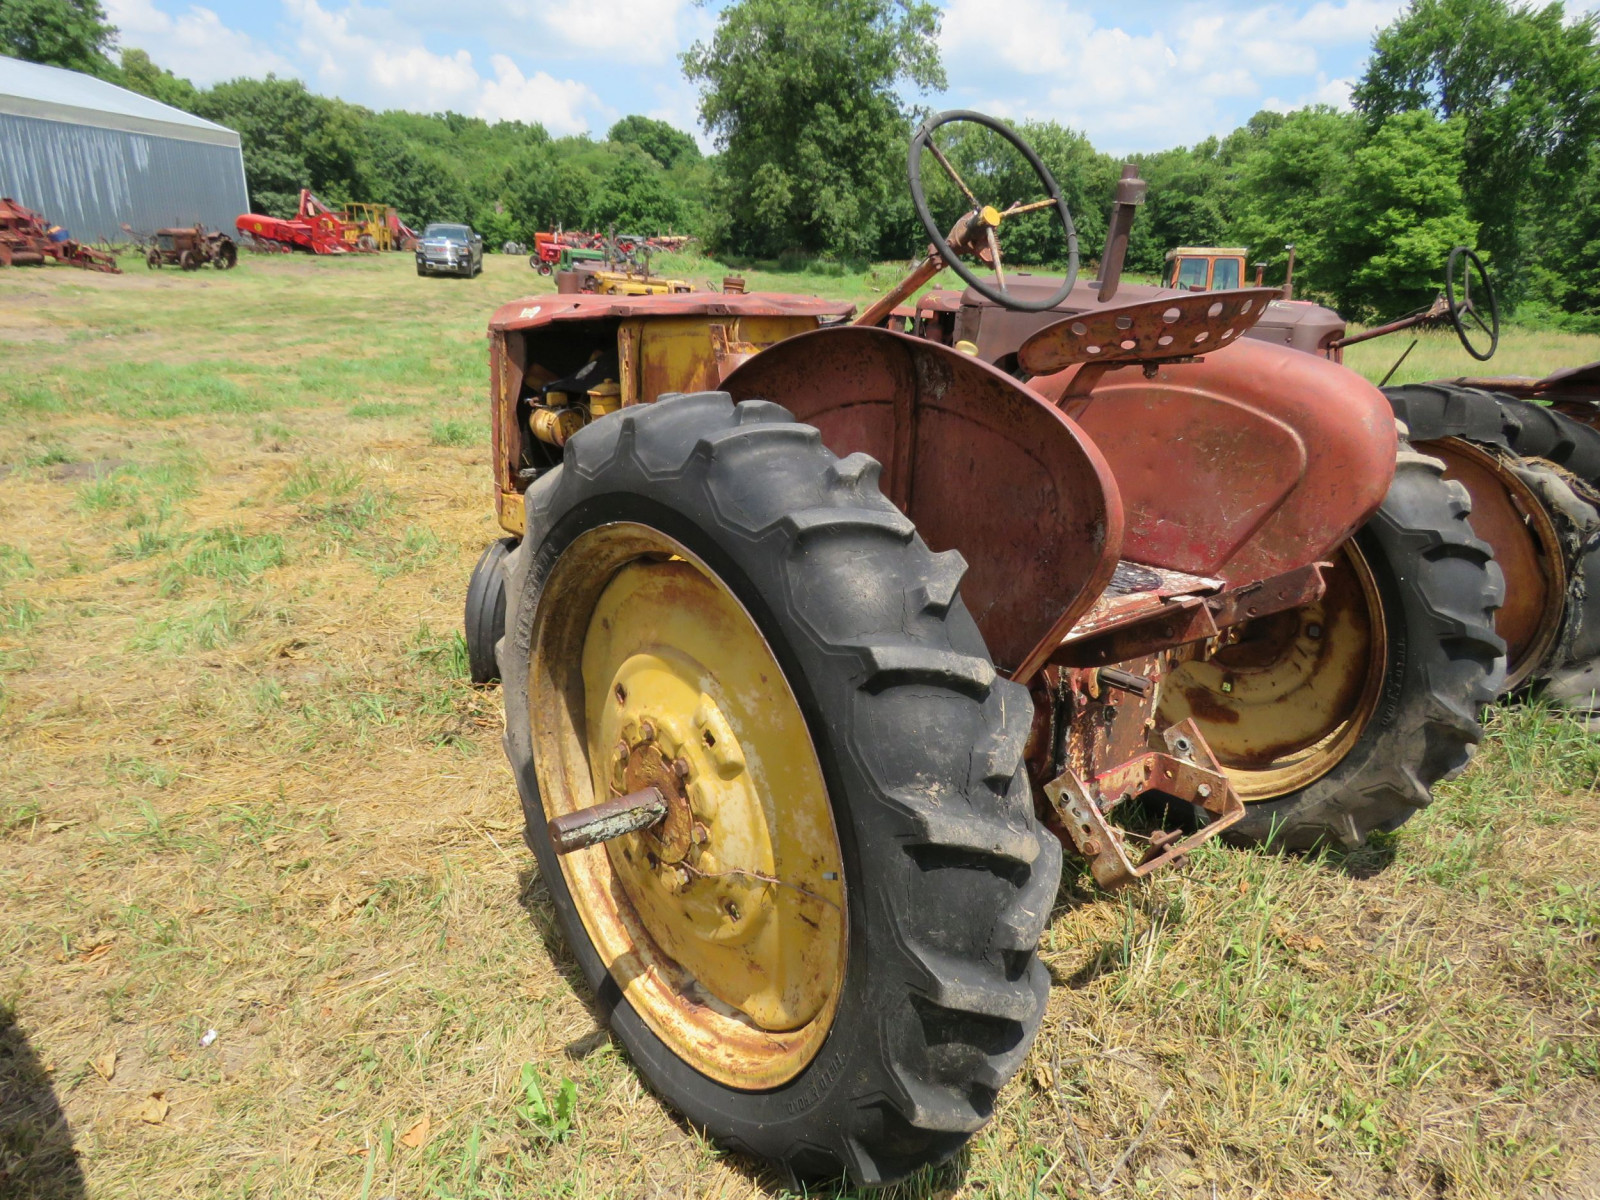 Massey Harris Tractor for Project or Parts - Image 5